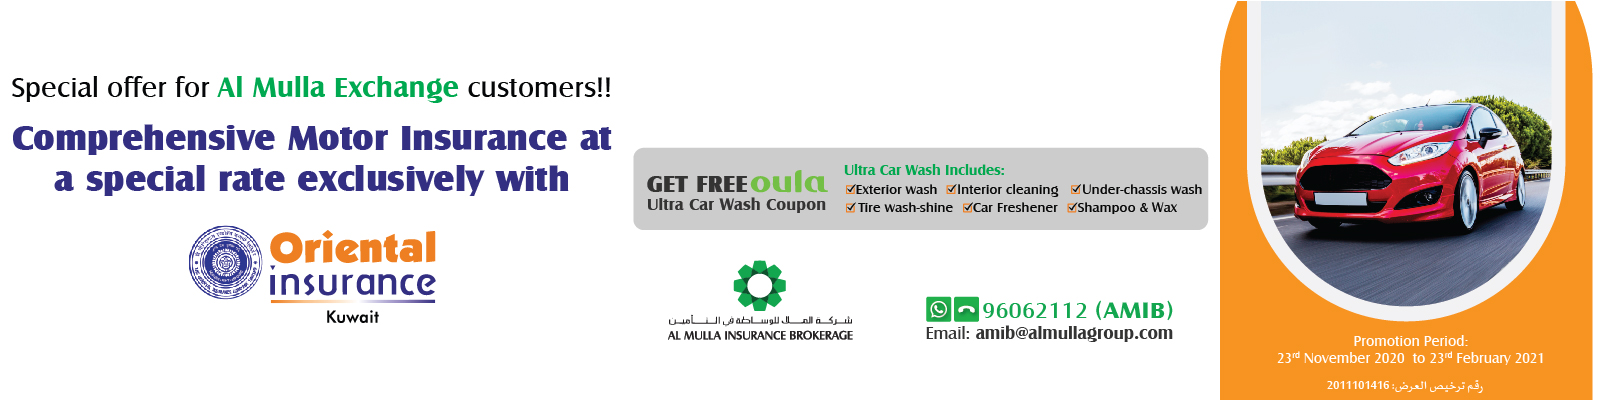 Special offer for Al Mulla Exchange Customers!!